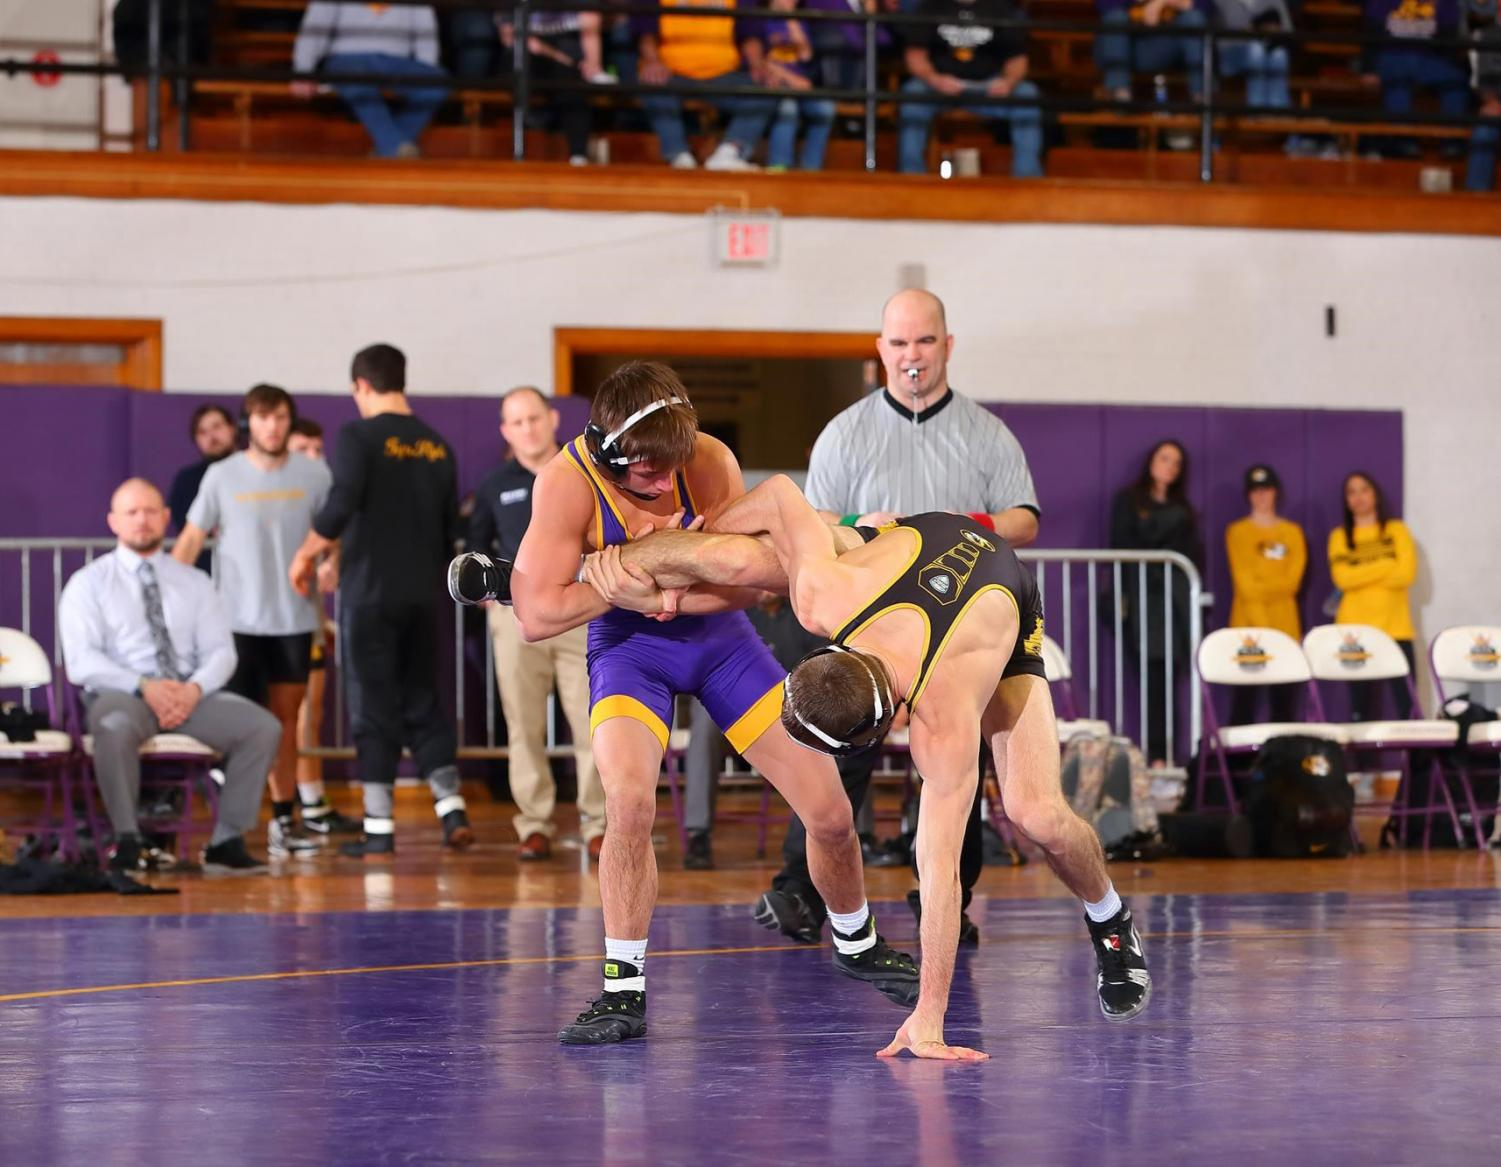 The Panthers will compete in their first dual meet of the season on Nov. 17 at the University of Pittsburgh. UNI compiled a 6-5 overall record and 3-2 record in dual meets in their first season as an associate member of the Big 12 Conference.